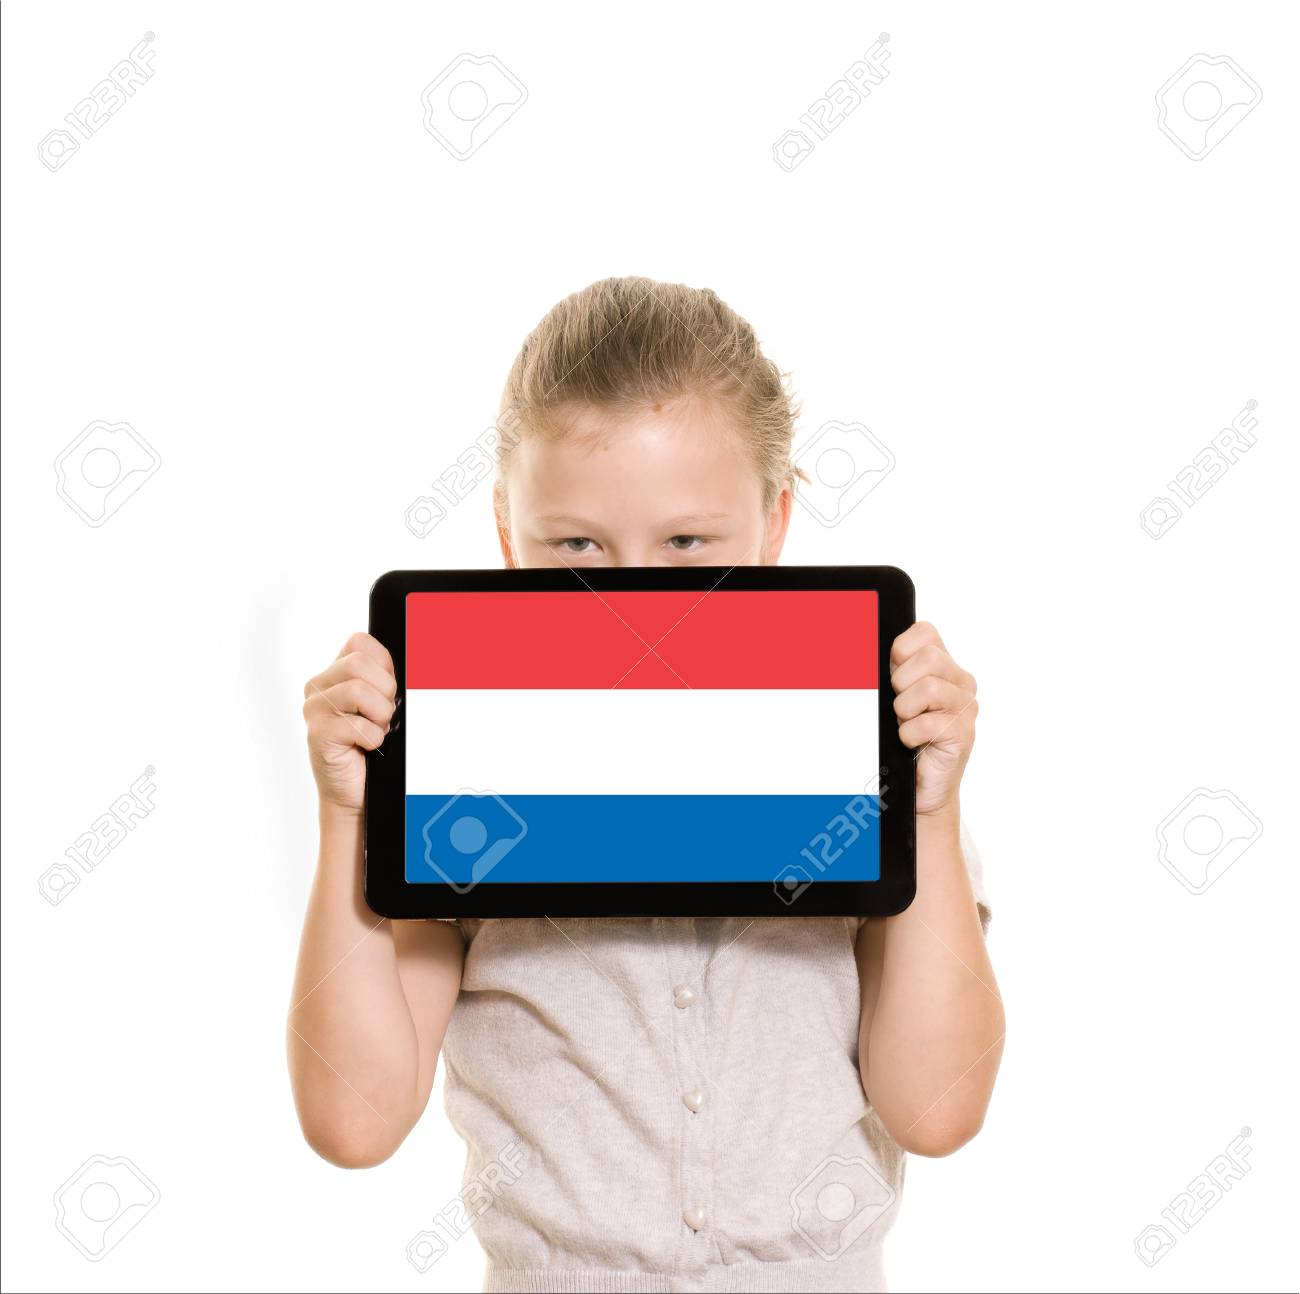 flag of Holland diplayed on tablet computer held by young girl Stock Photo - 21770383